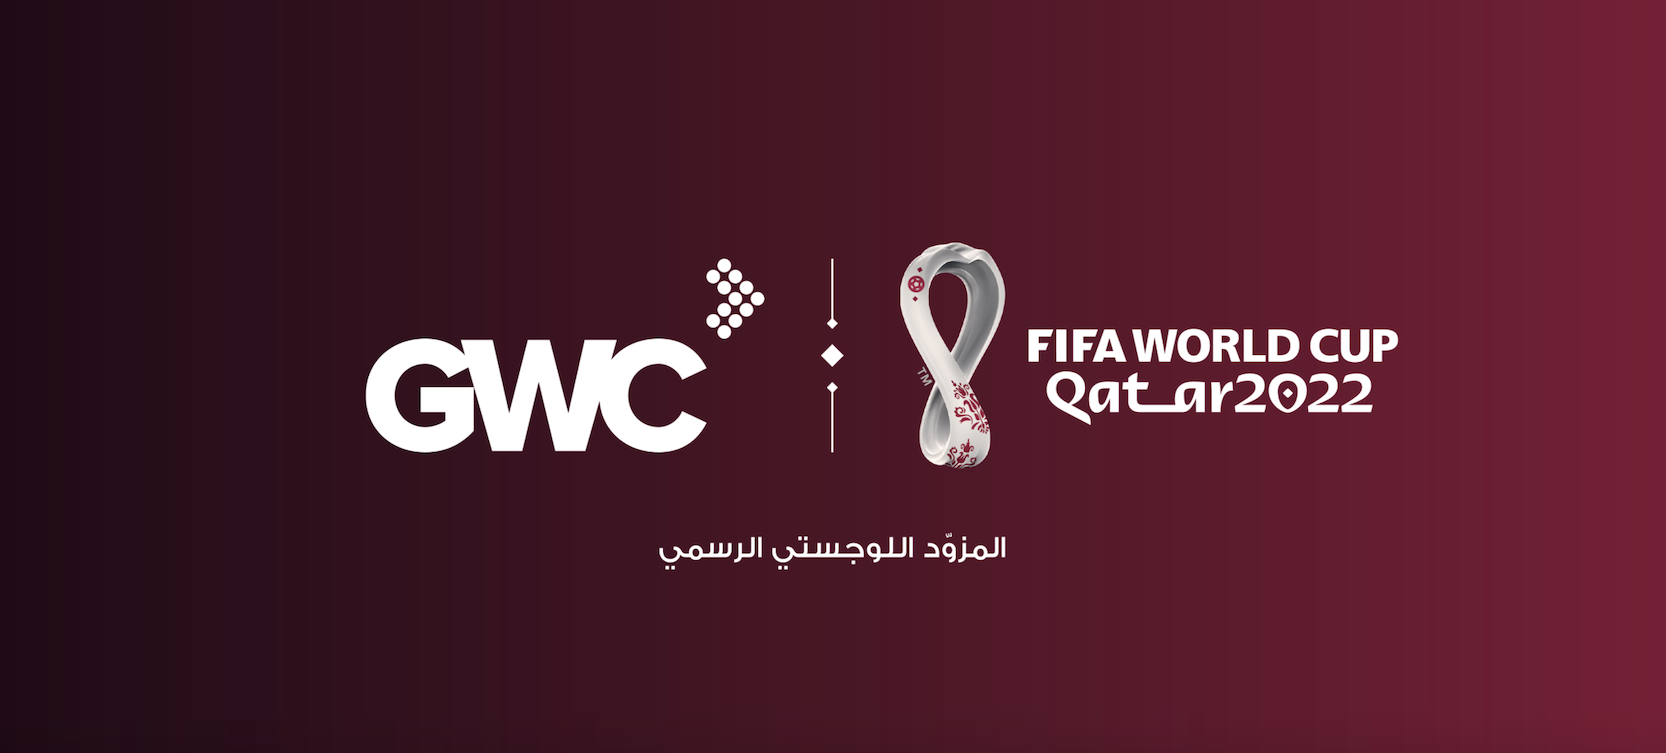 GWC Signs Agreement with FIFA to Provide Logistic Services for FIFA World Cup Qatar 2022